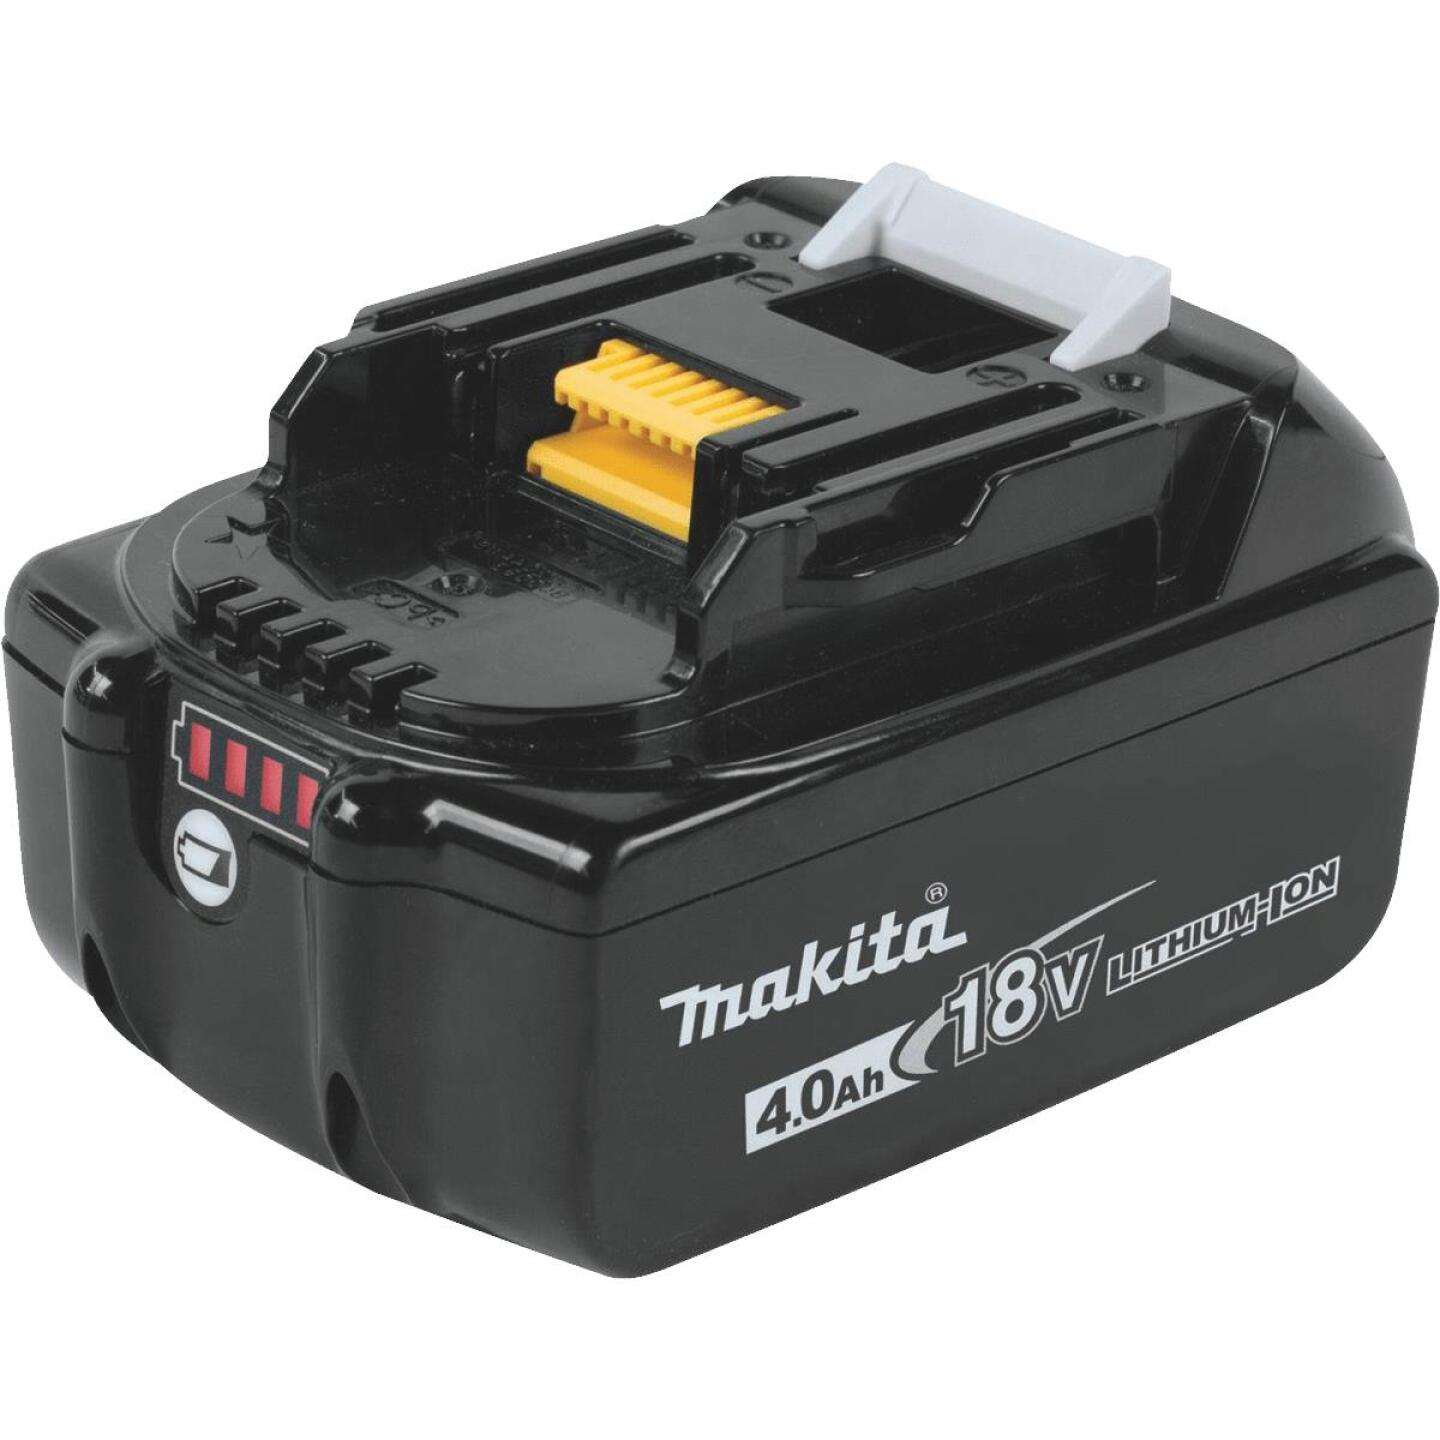 Makita 18 Volt LXT Lithium-Ion 4.0 Ah Tool Battery Image 1